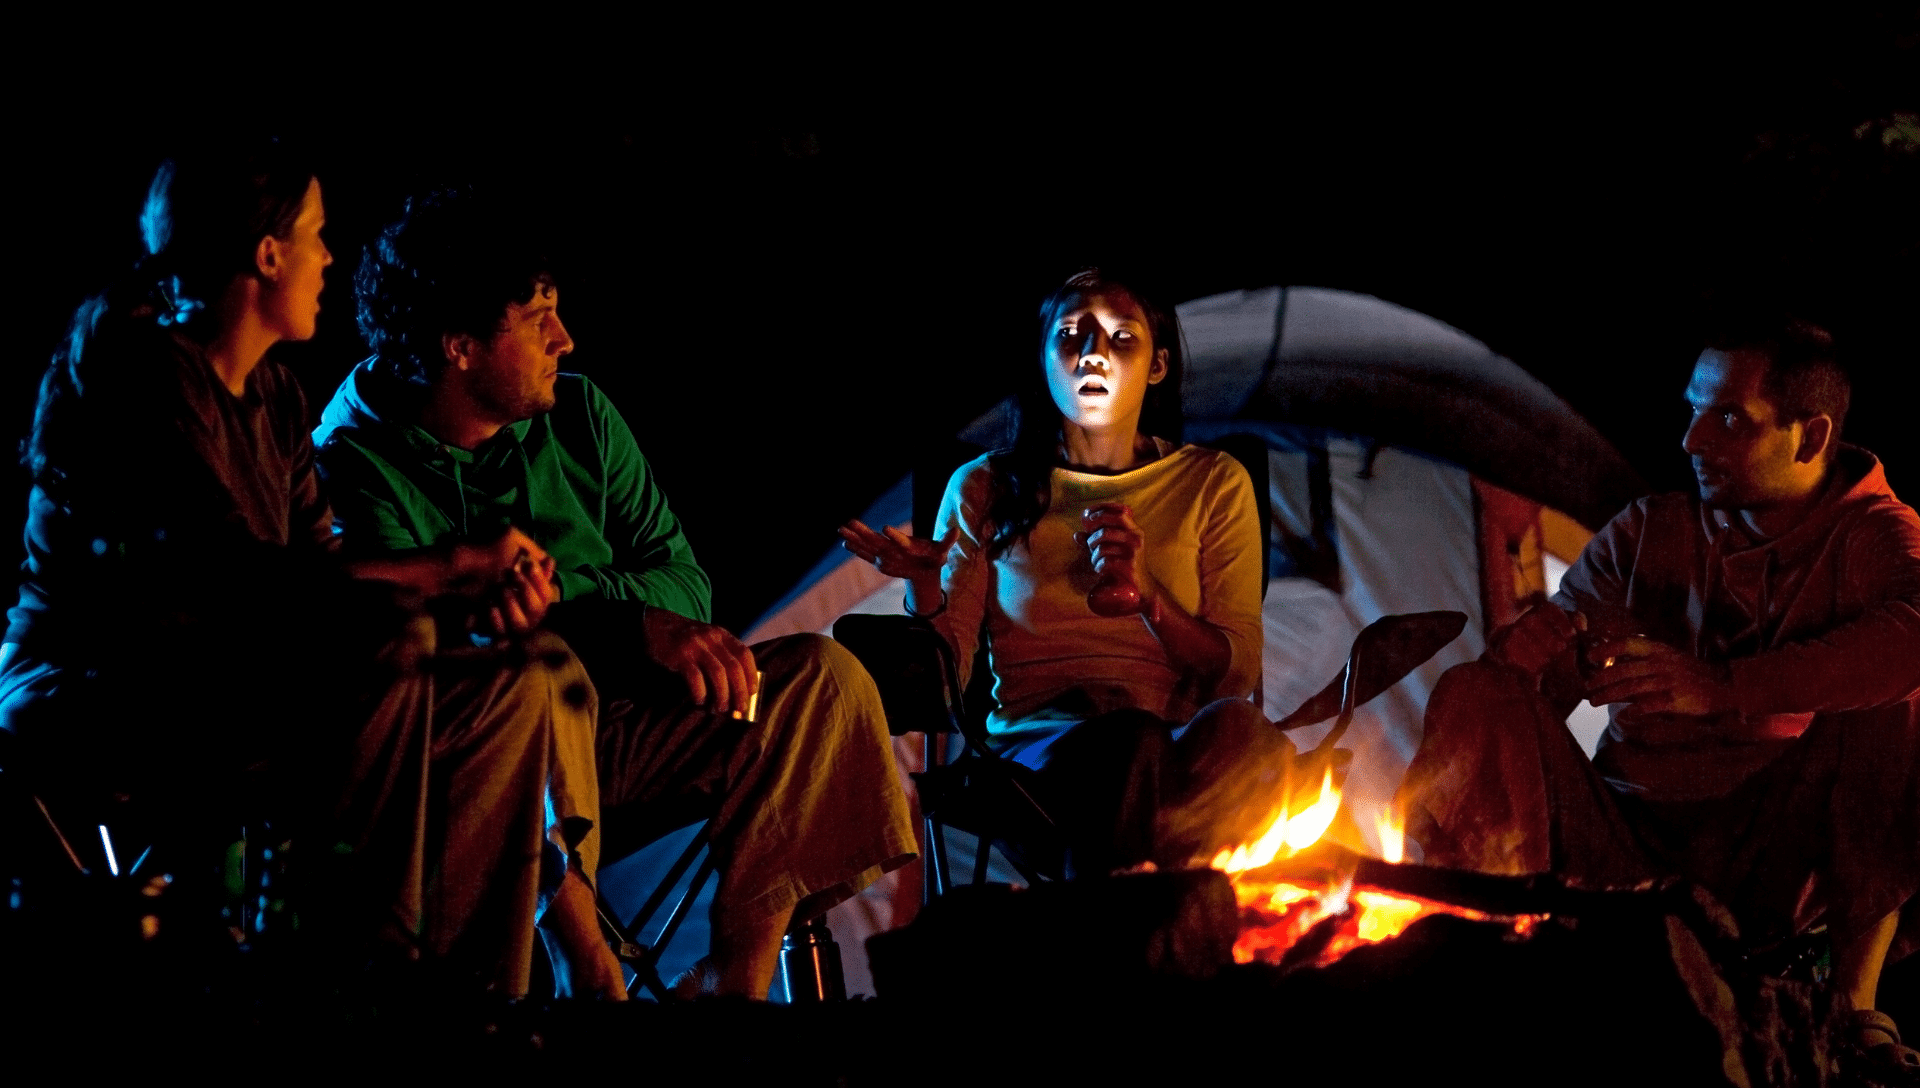 On a dark night, around a campfire, four people sit in chairs telling the best scary stories. The storyteller holds a flashlight, shining it from below on her face.